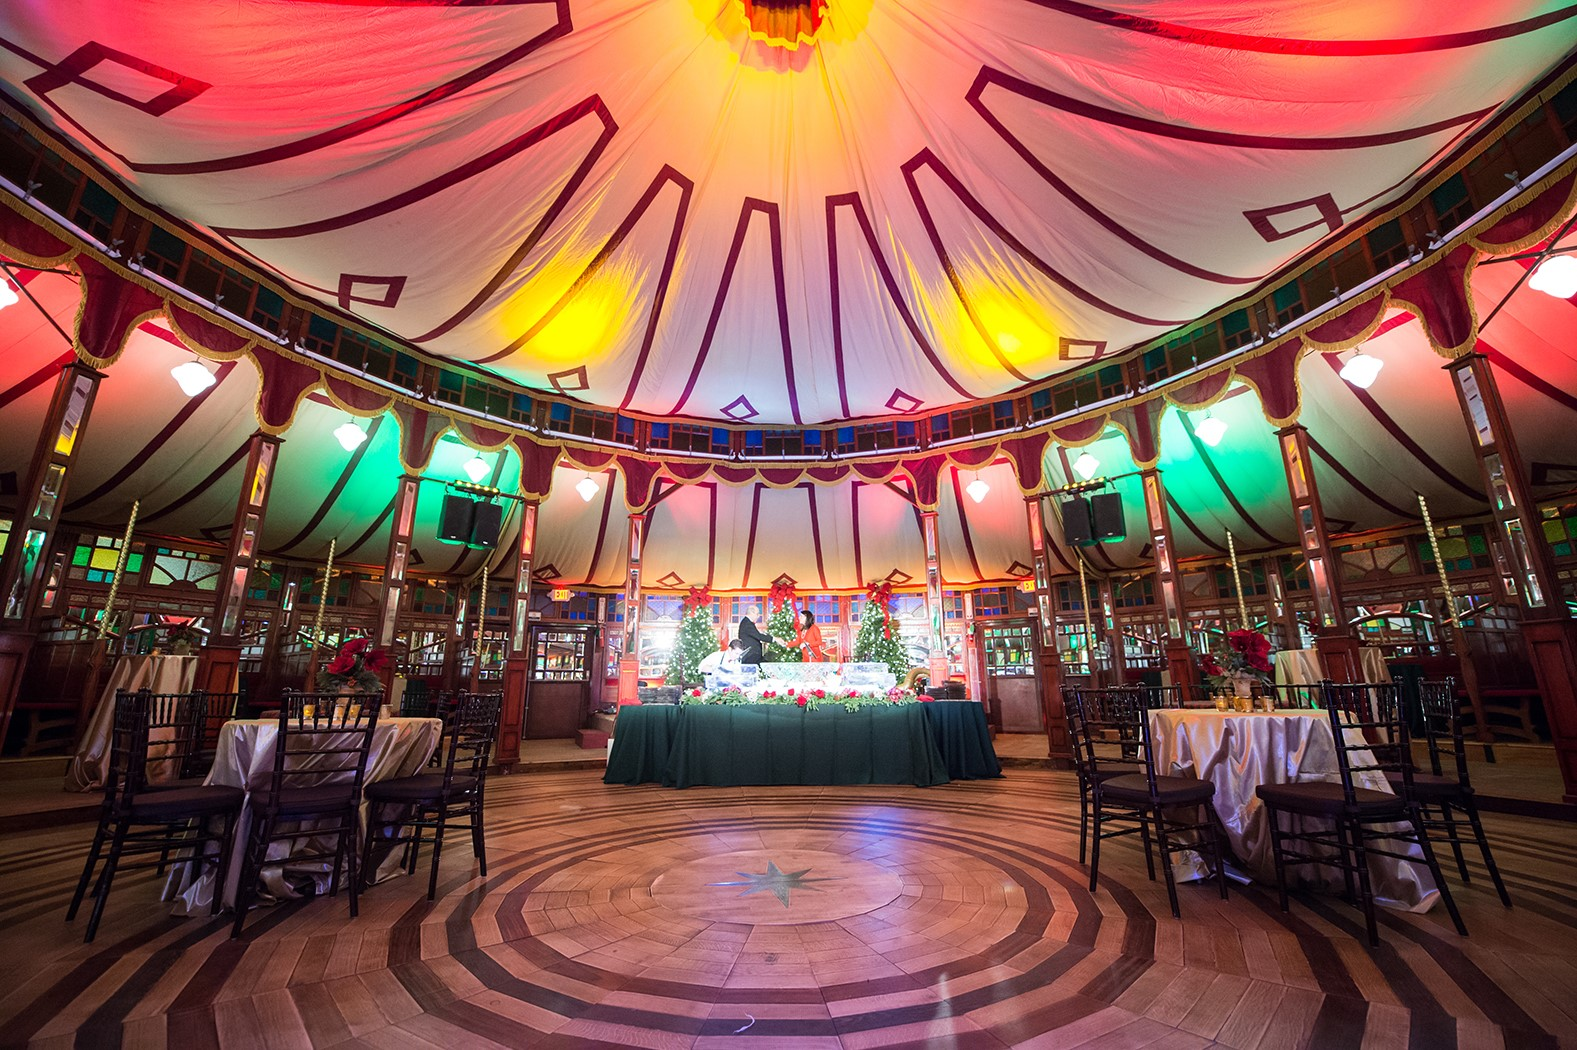 Spiegeltent at Bayou Bend - interior, set up for party